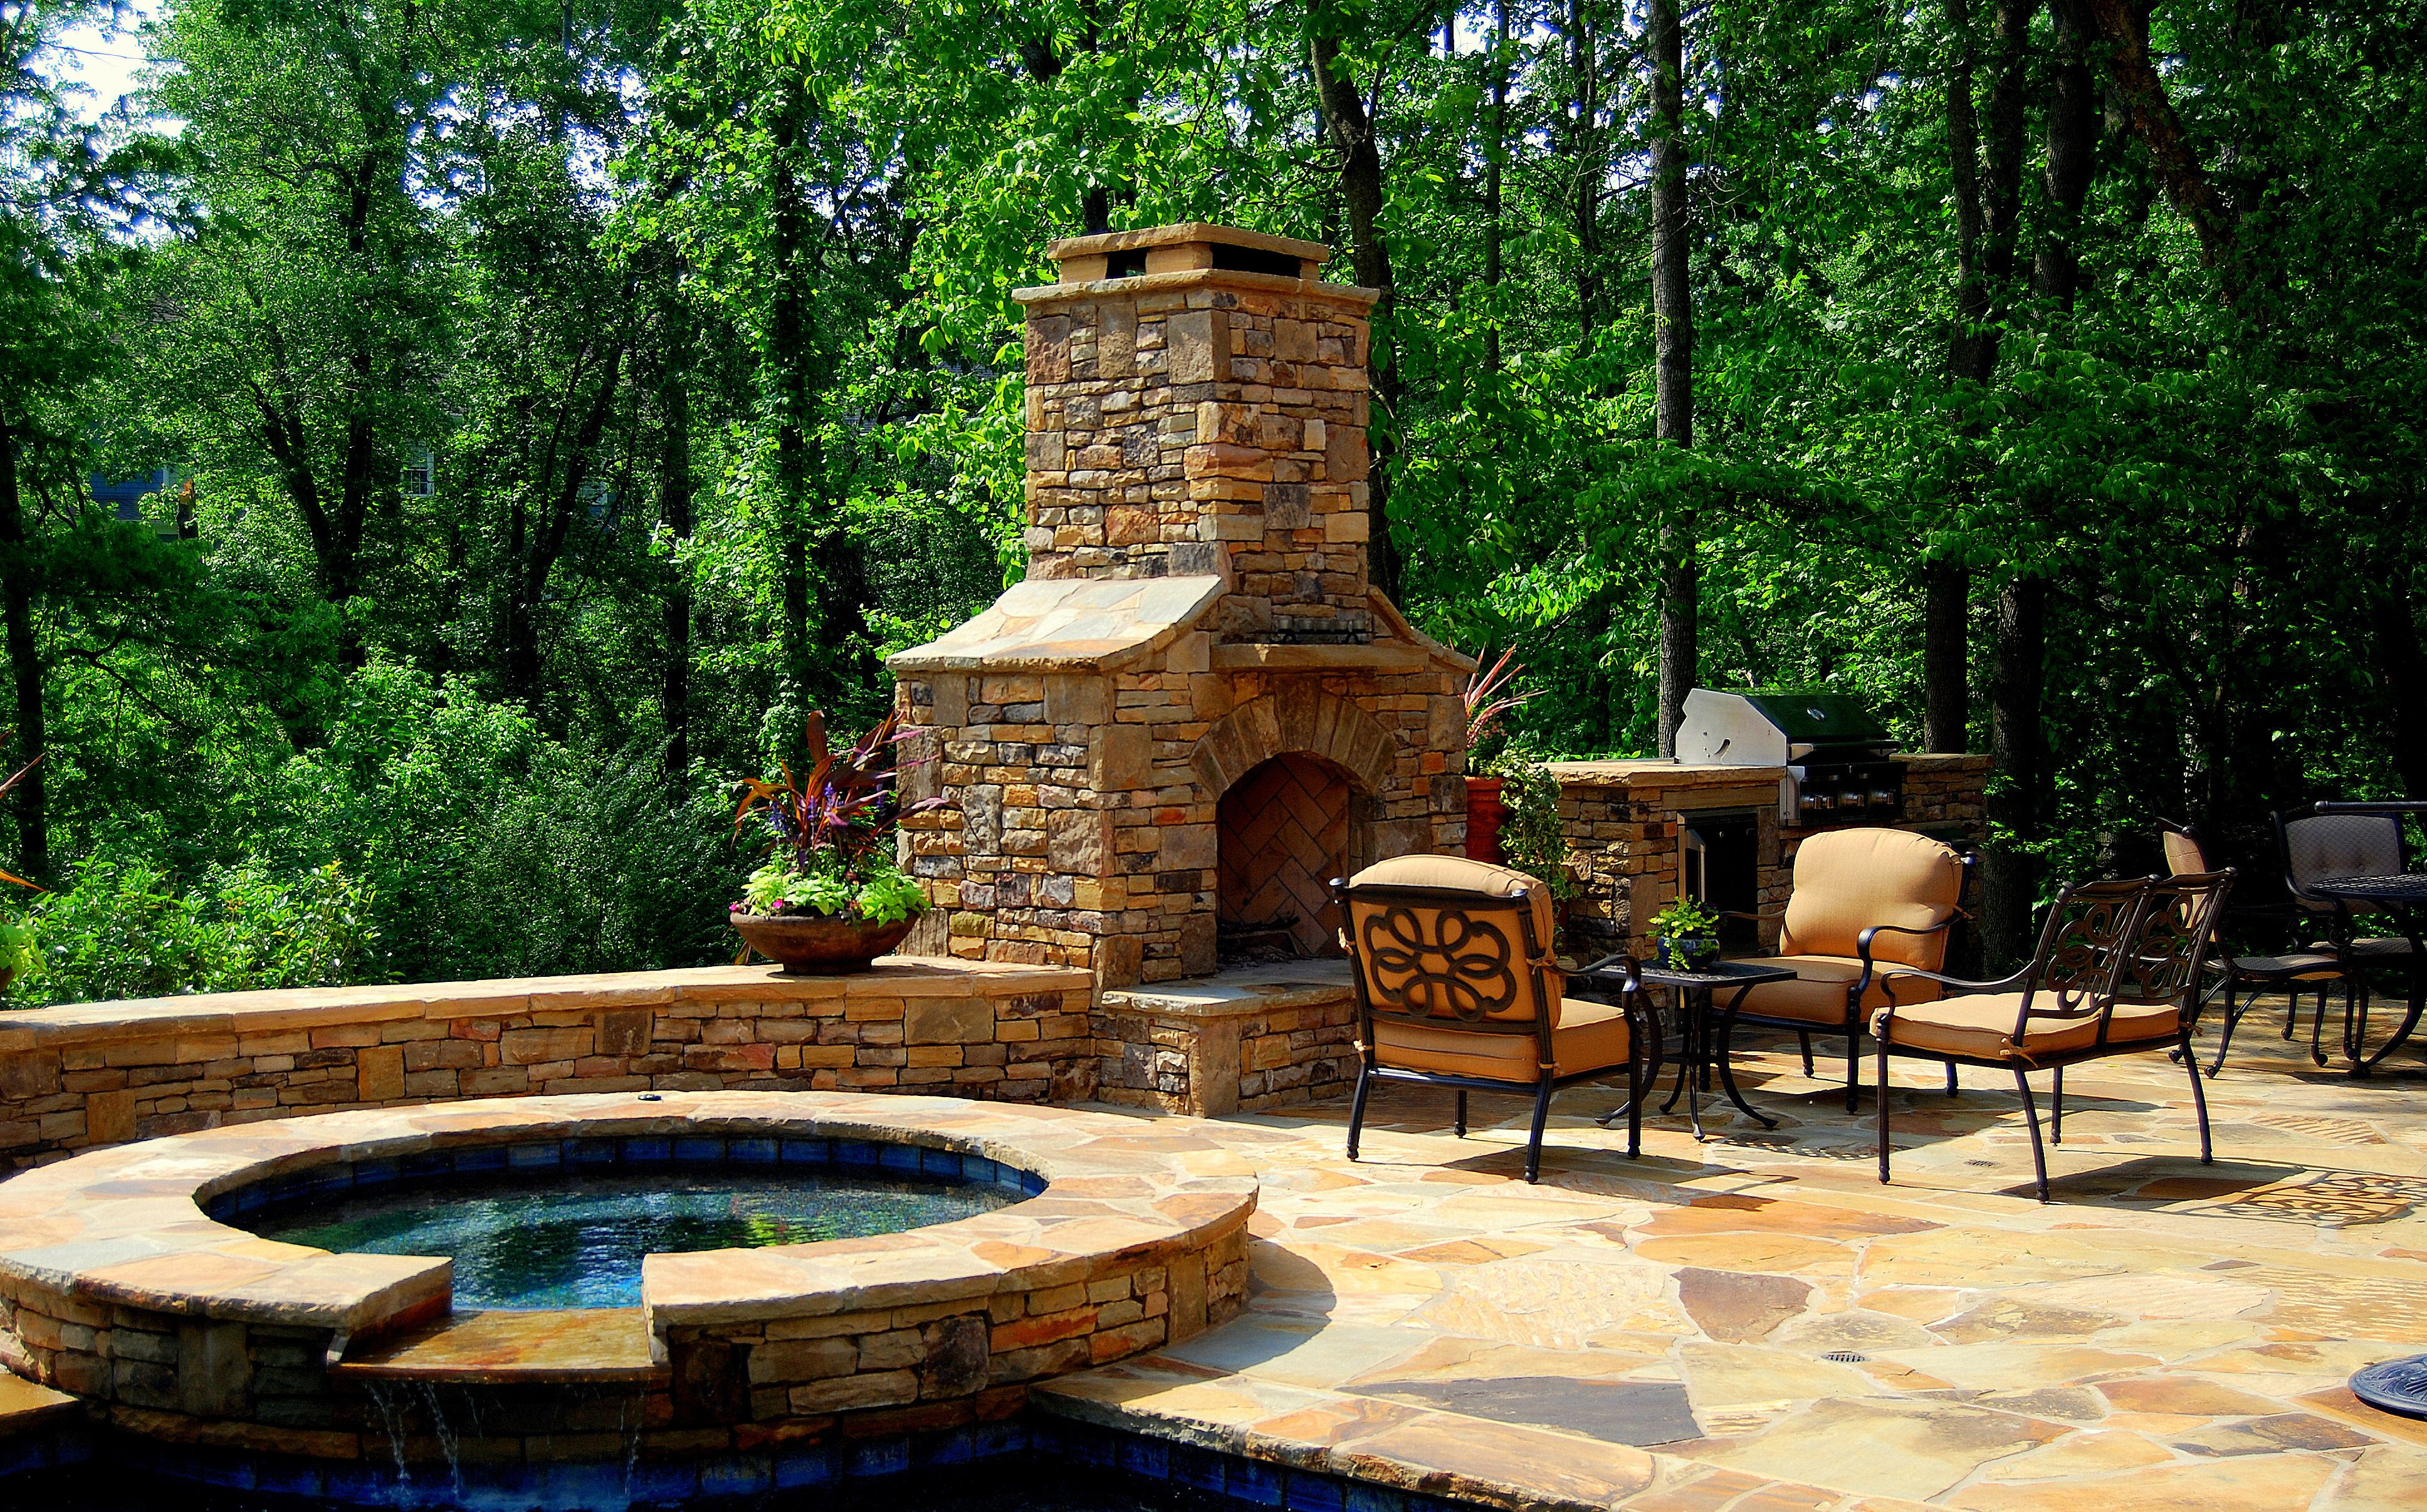 e3711e38667790bda4caa3aaa1eaf749 Top Result 50 Awesome Cost Of Outdoor Fireplace Picture 2018 Zat3